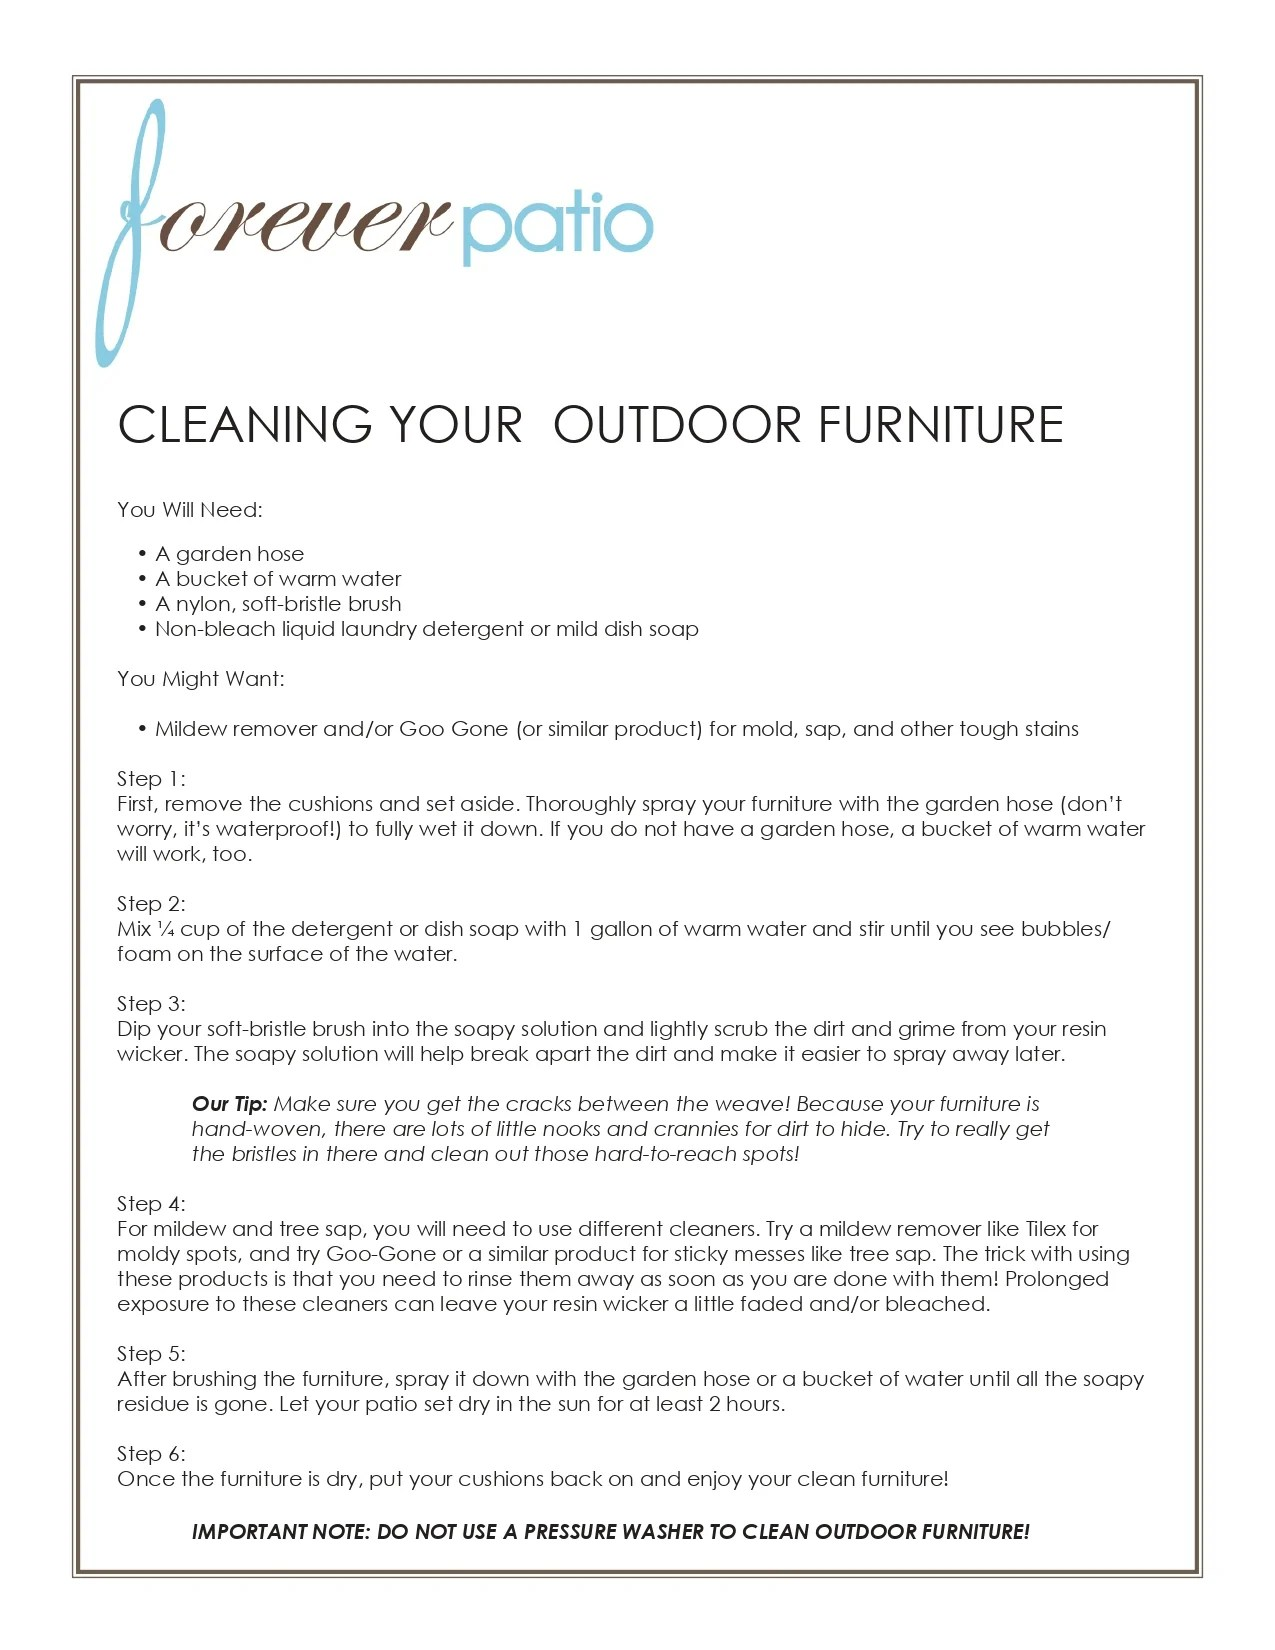 cleaning your outdoor furniture